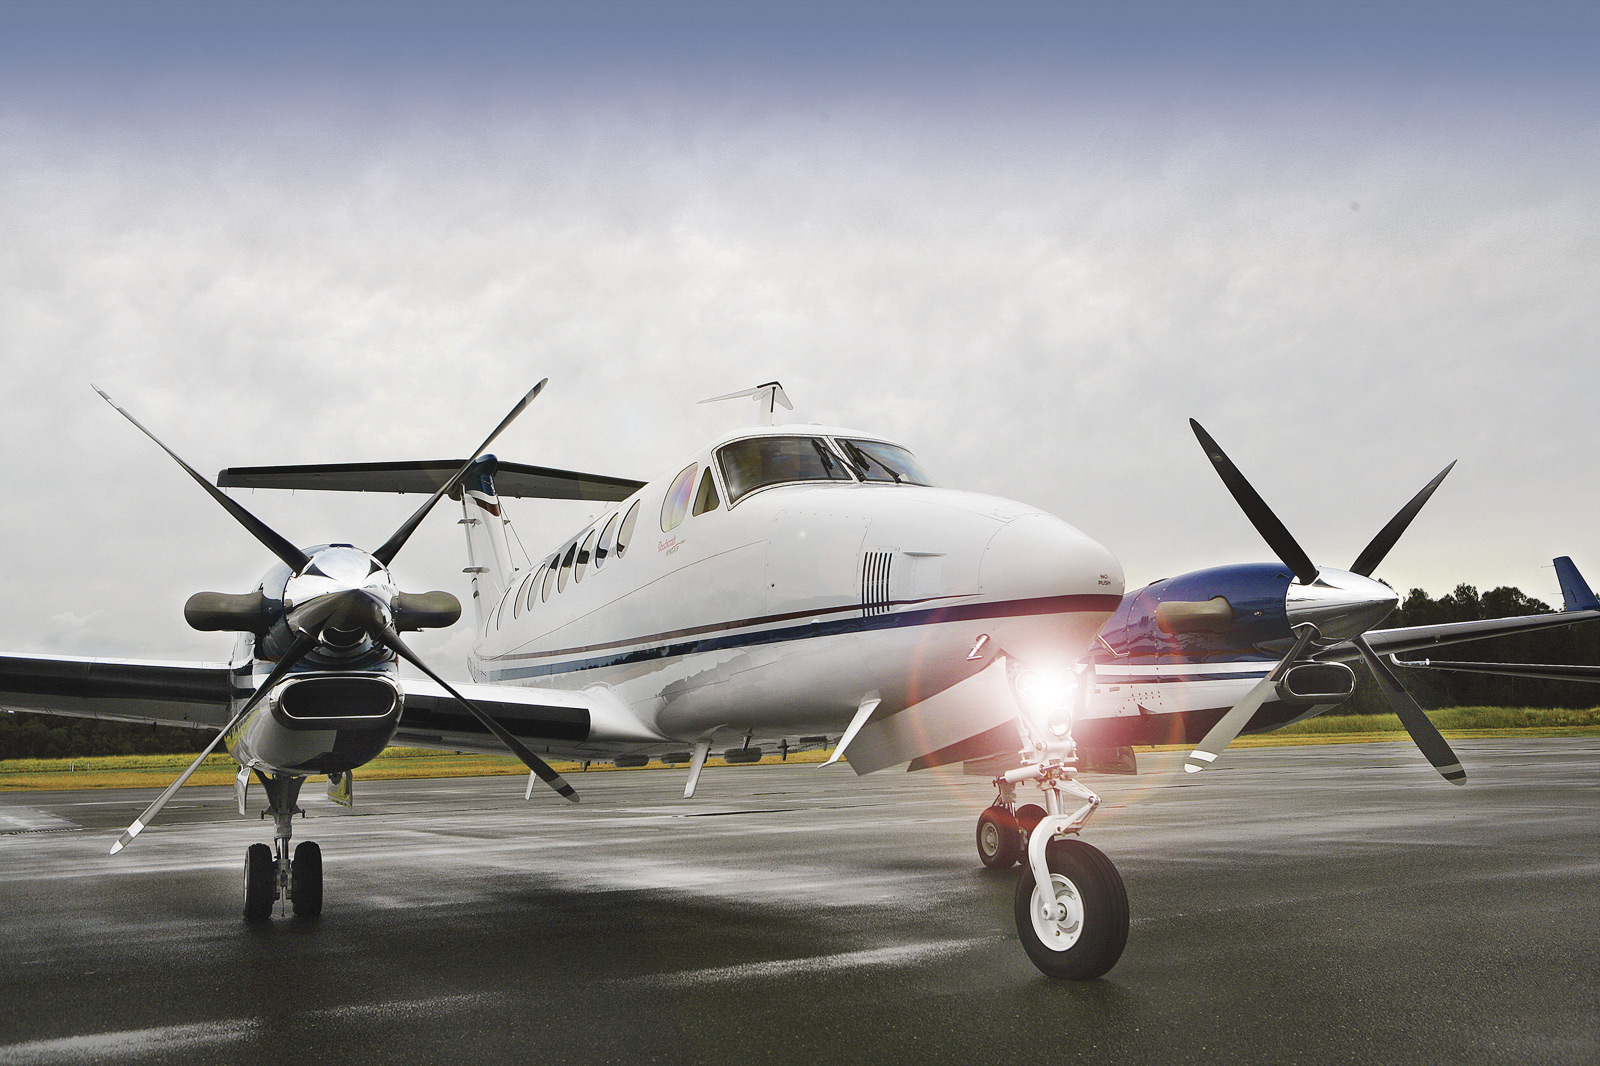 King Air turboprop readies for flight inspection flight